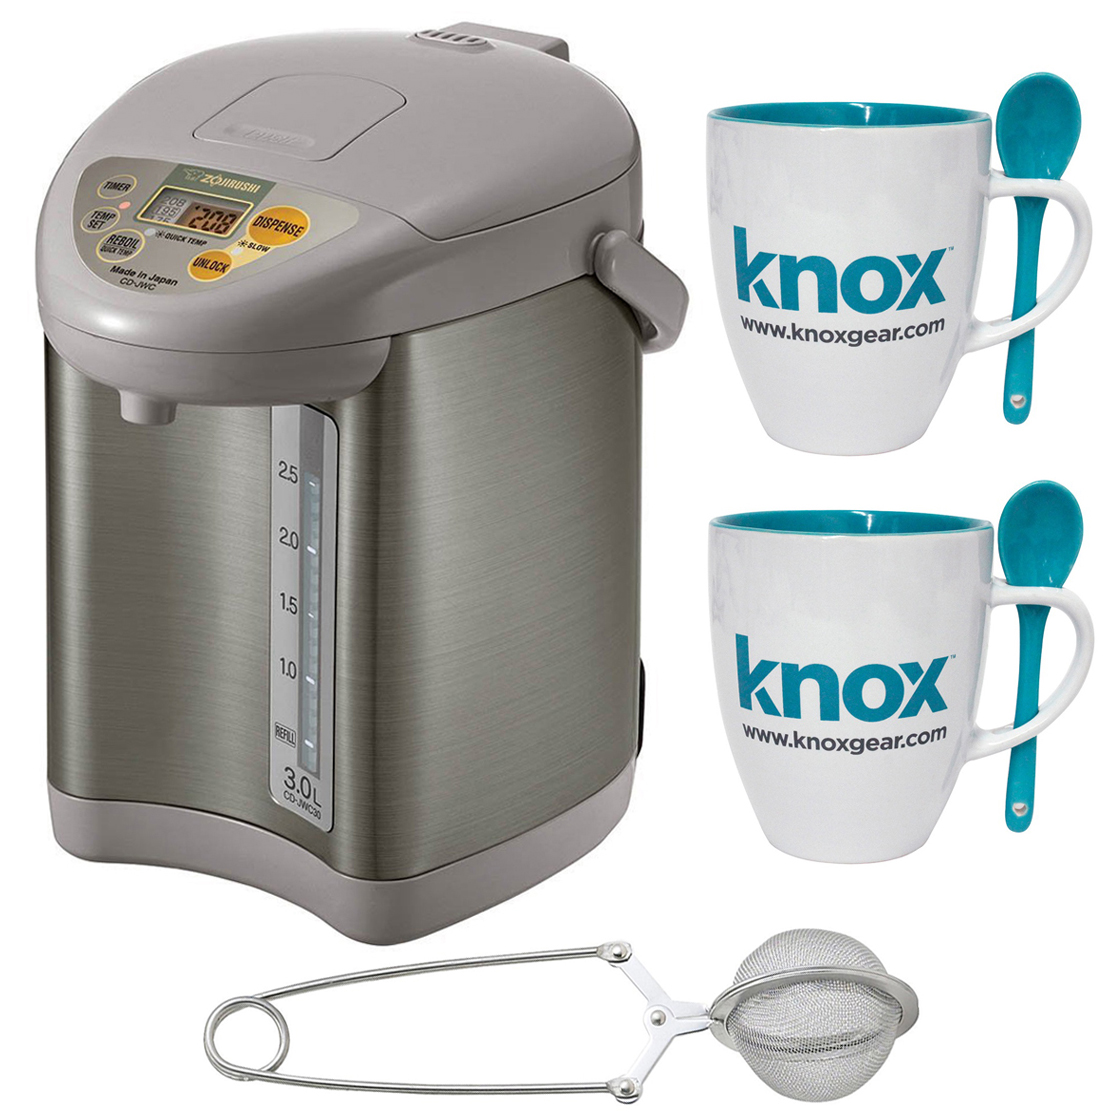 Zojirushi CD-JWC30 Micom Water Boiler and Warmer + Tea Infuser and Knox Mugs